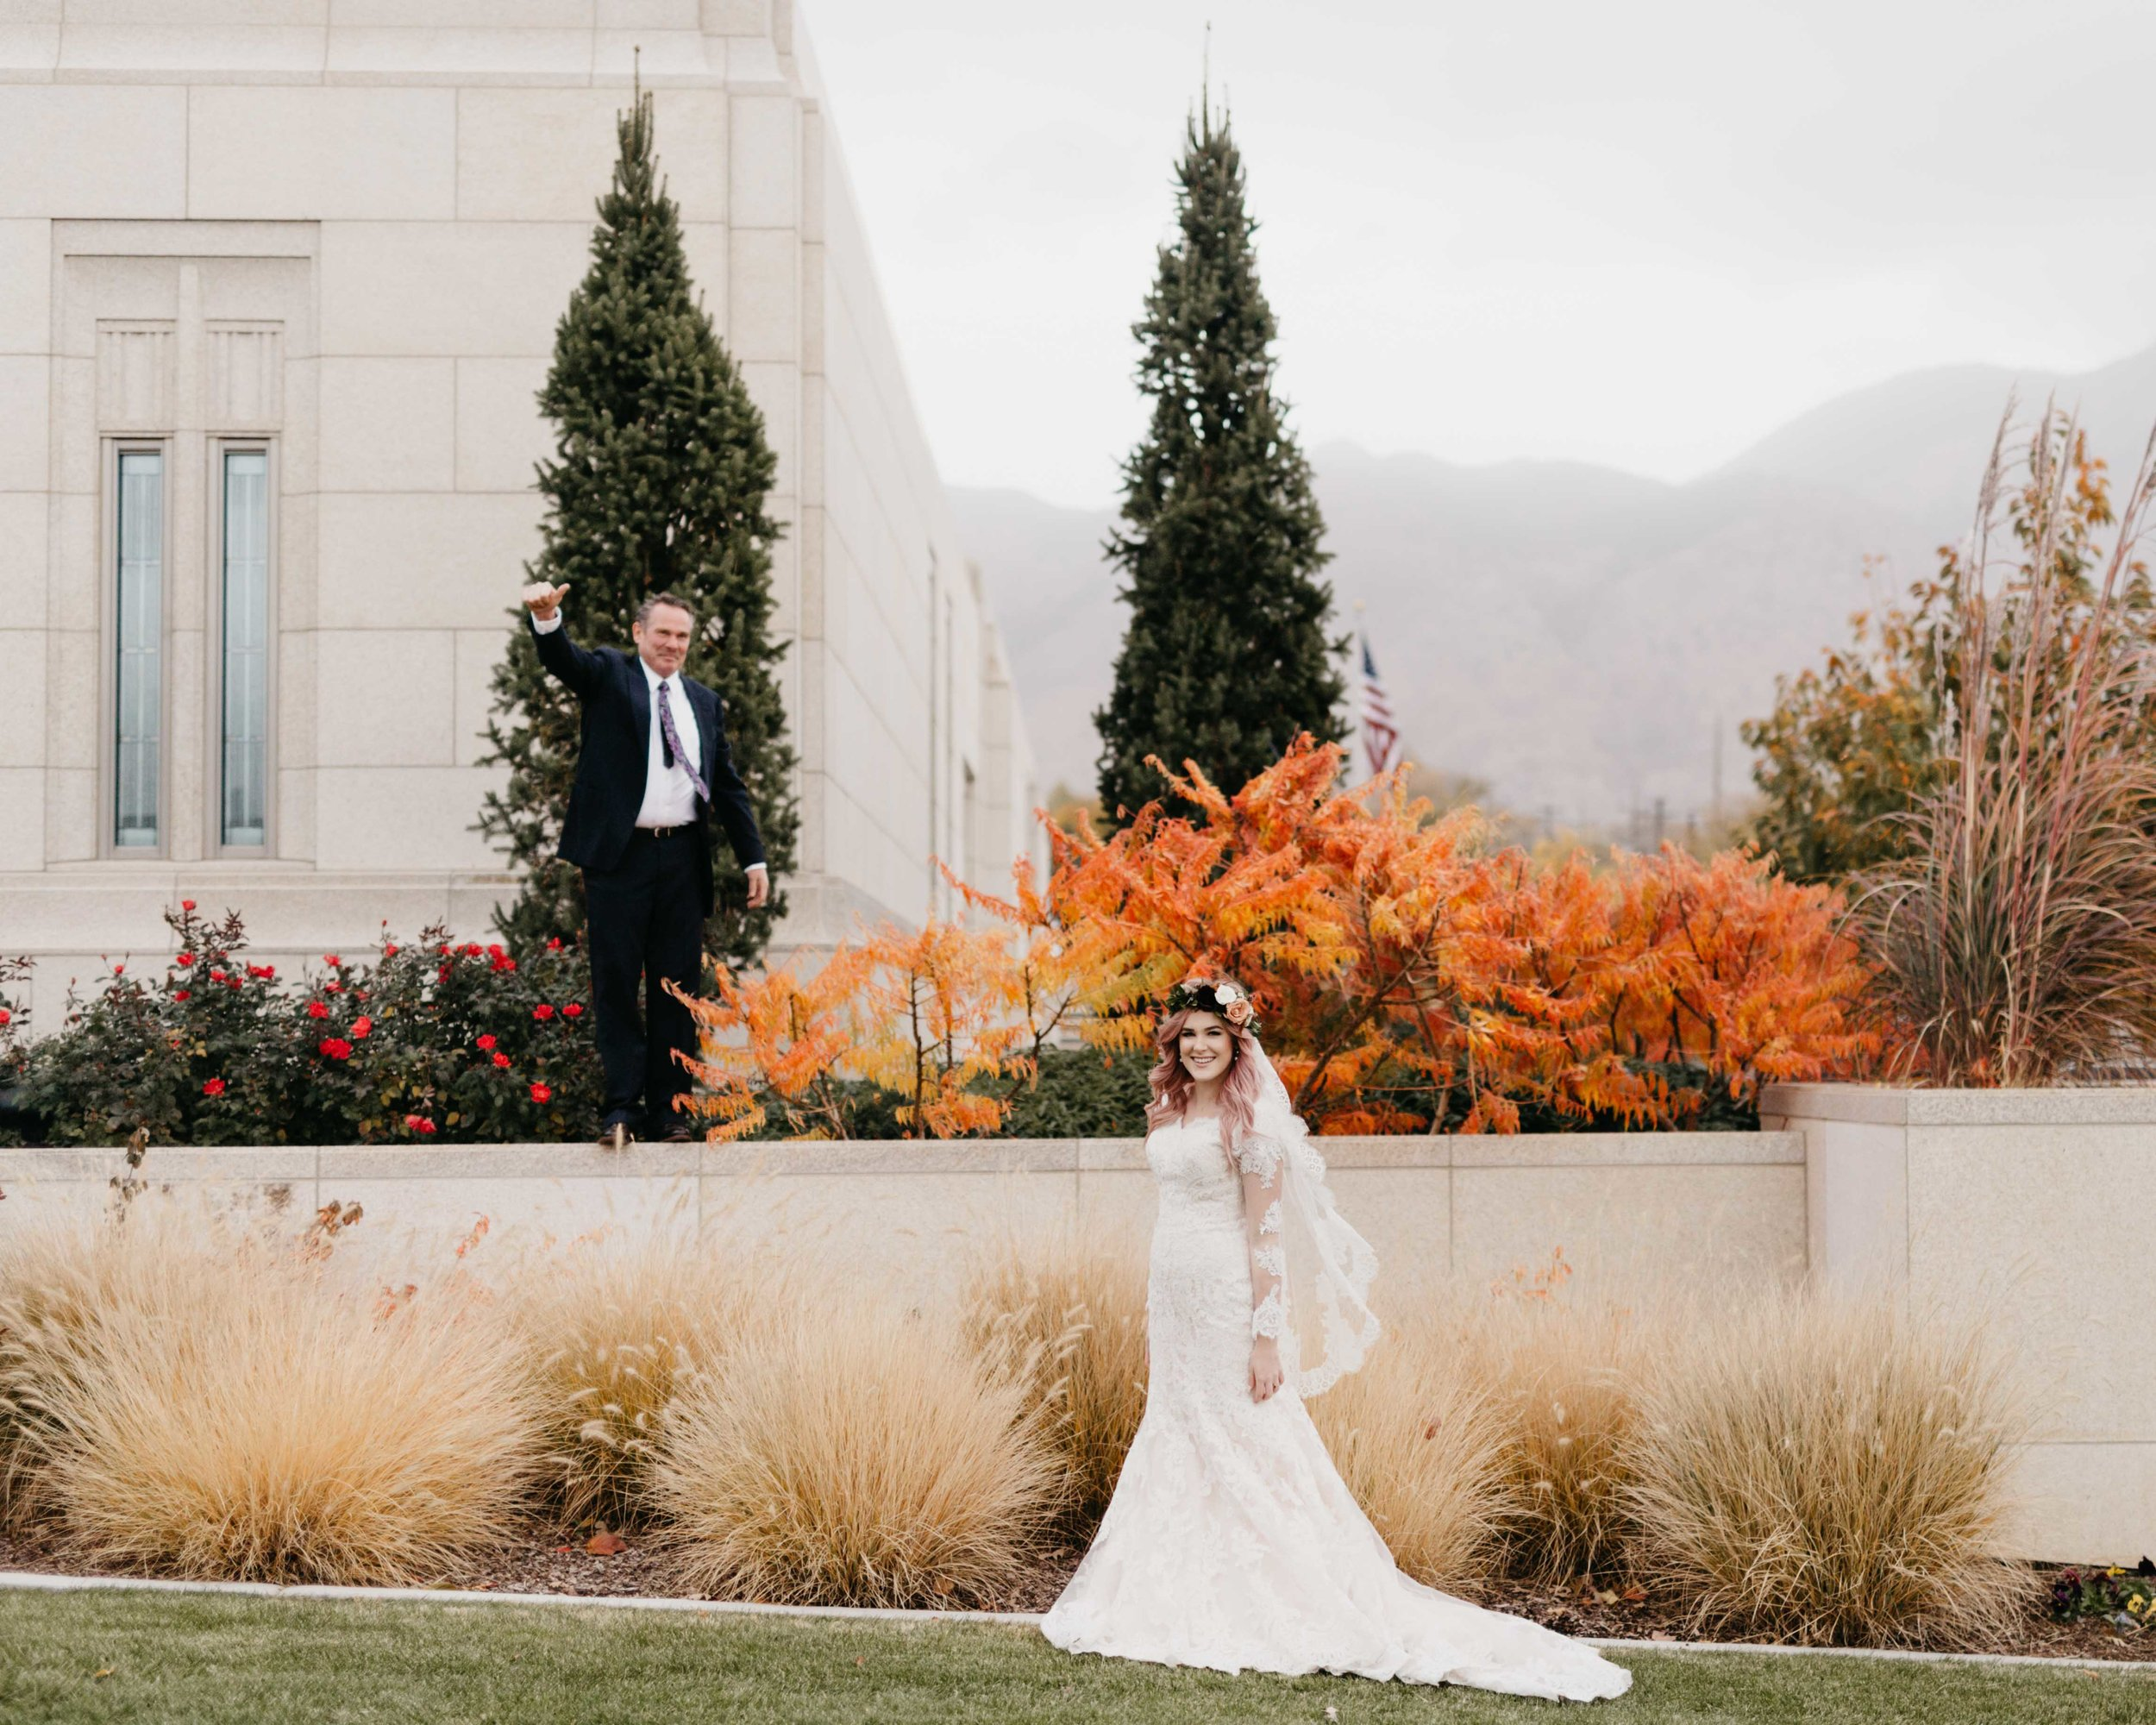 Utah-Wedding-Photographer-9.jpg